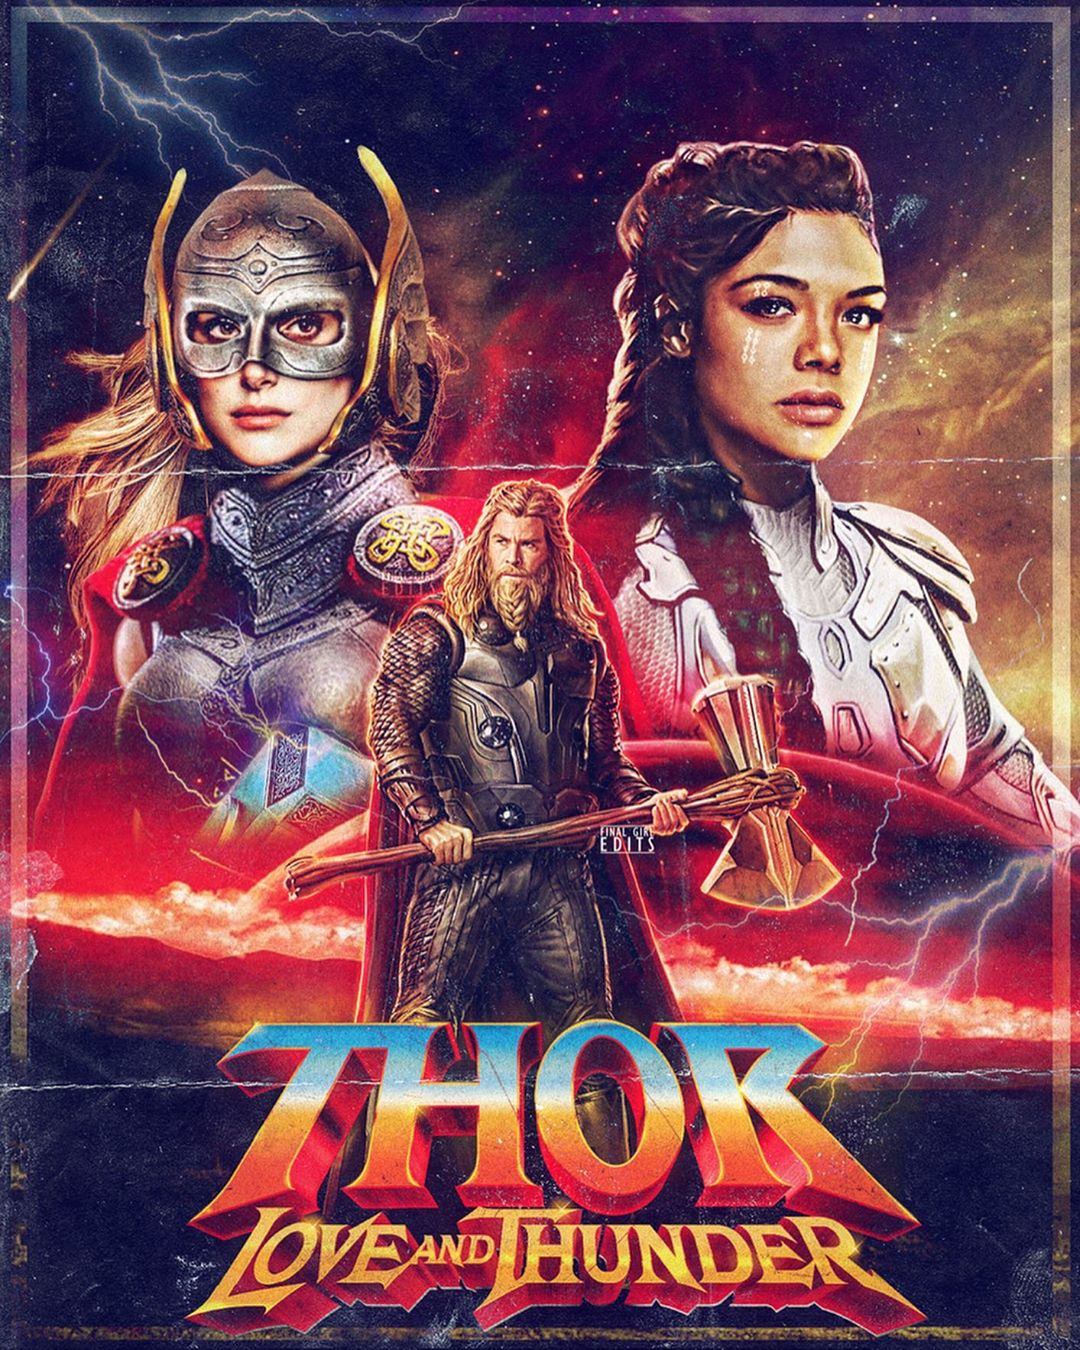 A movie poster for Thor: Love and Thunder, in which Valkyrie, in the top left, has been announced to be LGBTQ+.